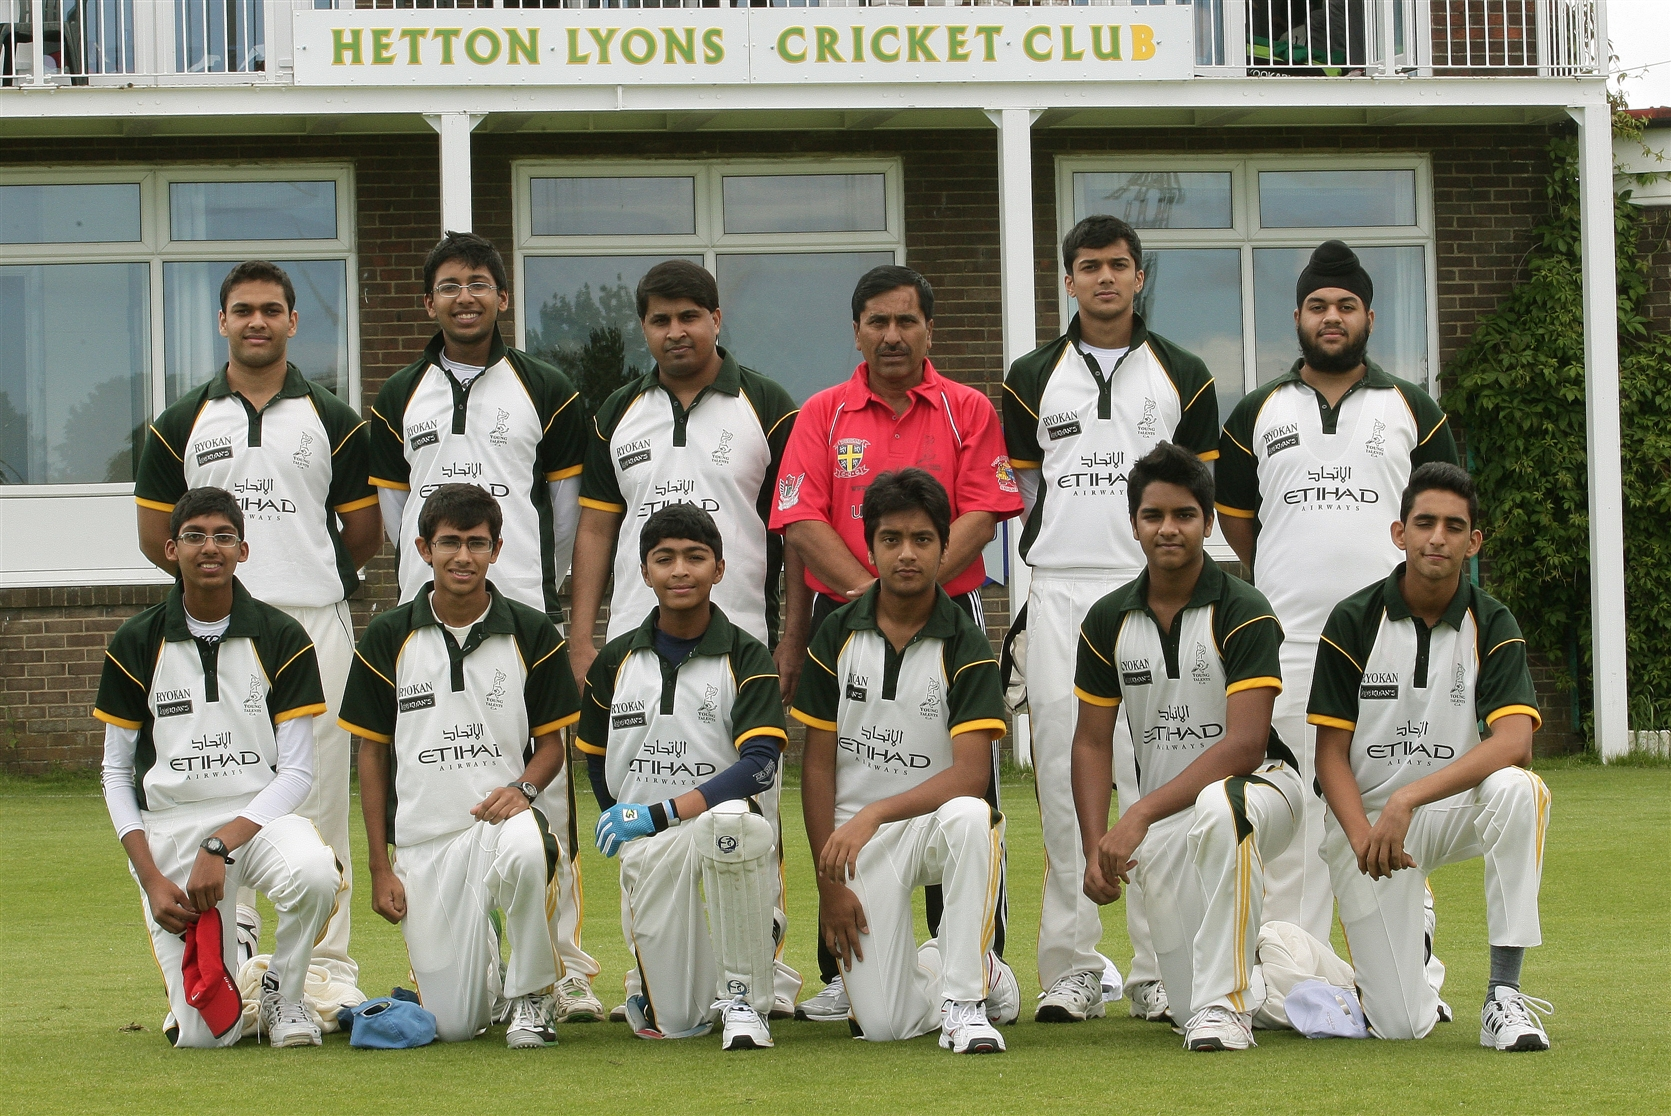 YTCA team with the coach Shazad Altaf, at Hetton Lyons ground  lined up for the  friendly match against Hetton lions team on 27-7-12